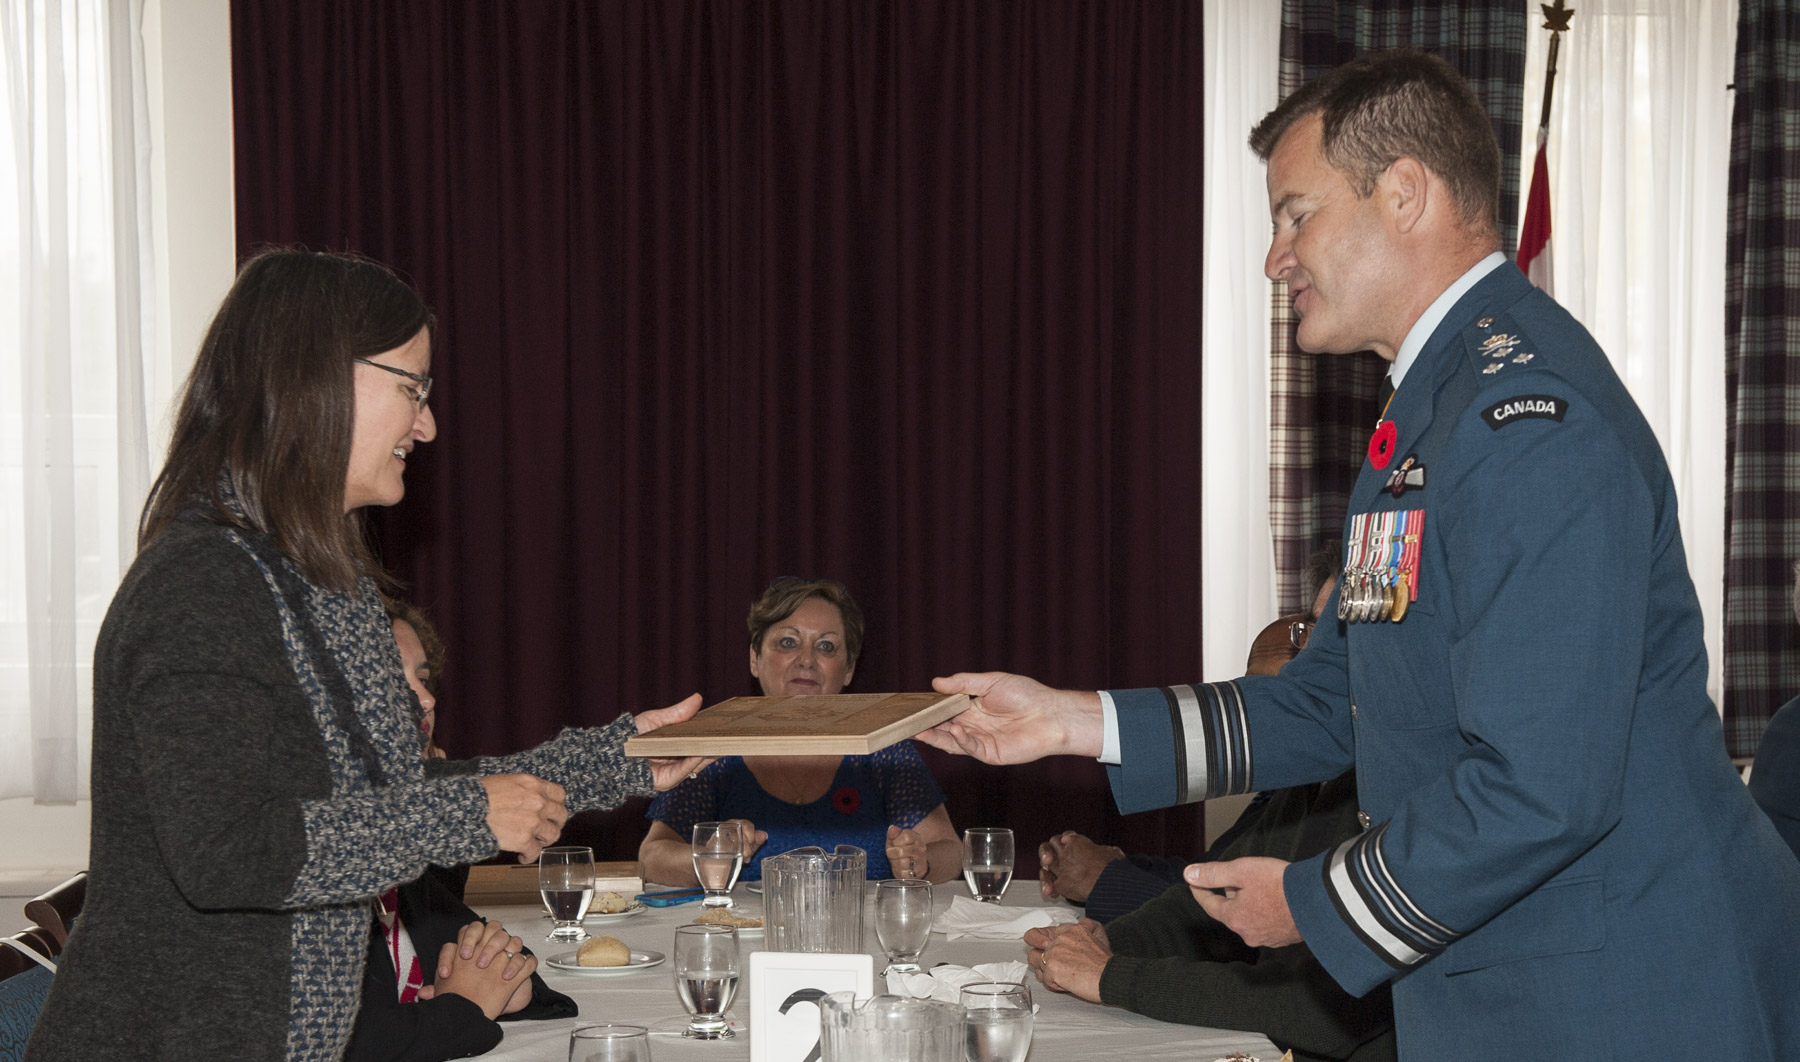 Lieutenant-General Mike Hood, commander of the Royal Canadian Air Force, gives a wooden plaque that replicates the plaque on the new Boxtop 22 commemorative cairn to Captain (retired) Wilma de Groot, who survived the Boxtop 22 crash on October 30, 1991. PHOTO: Corporal Audrey Solomon, TN02-2016-0807-012